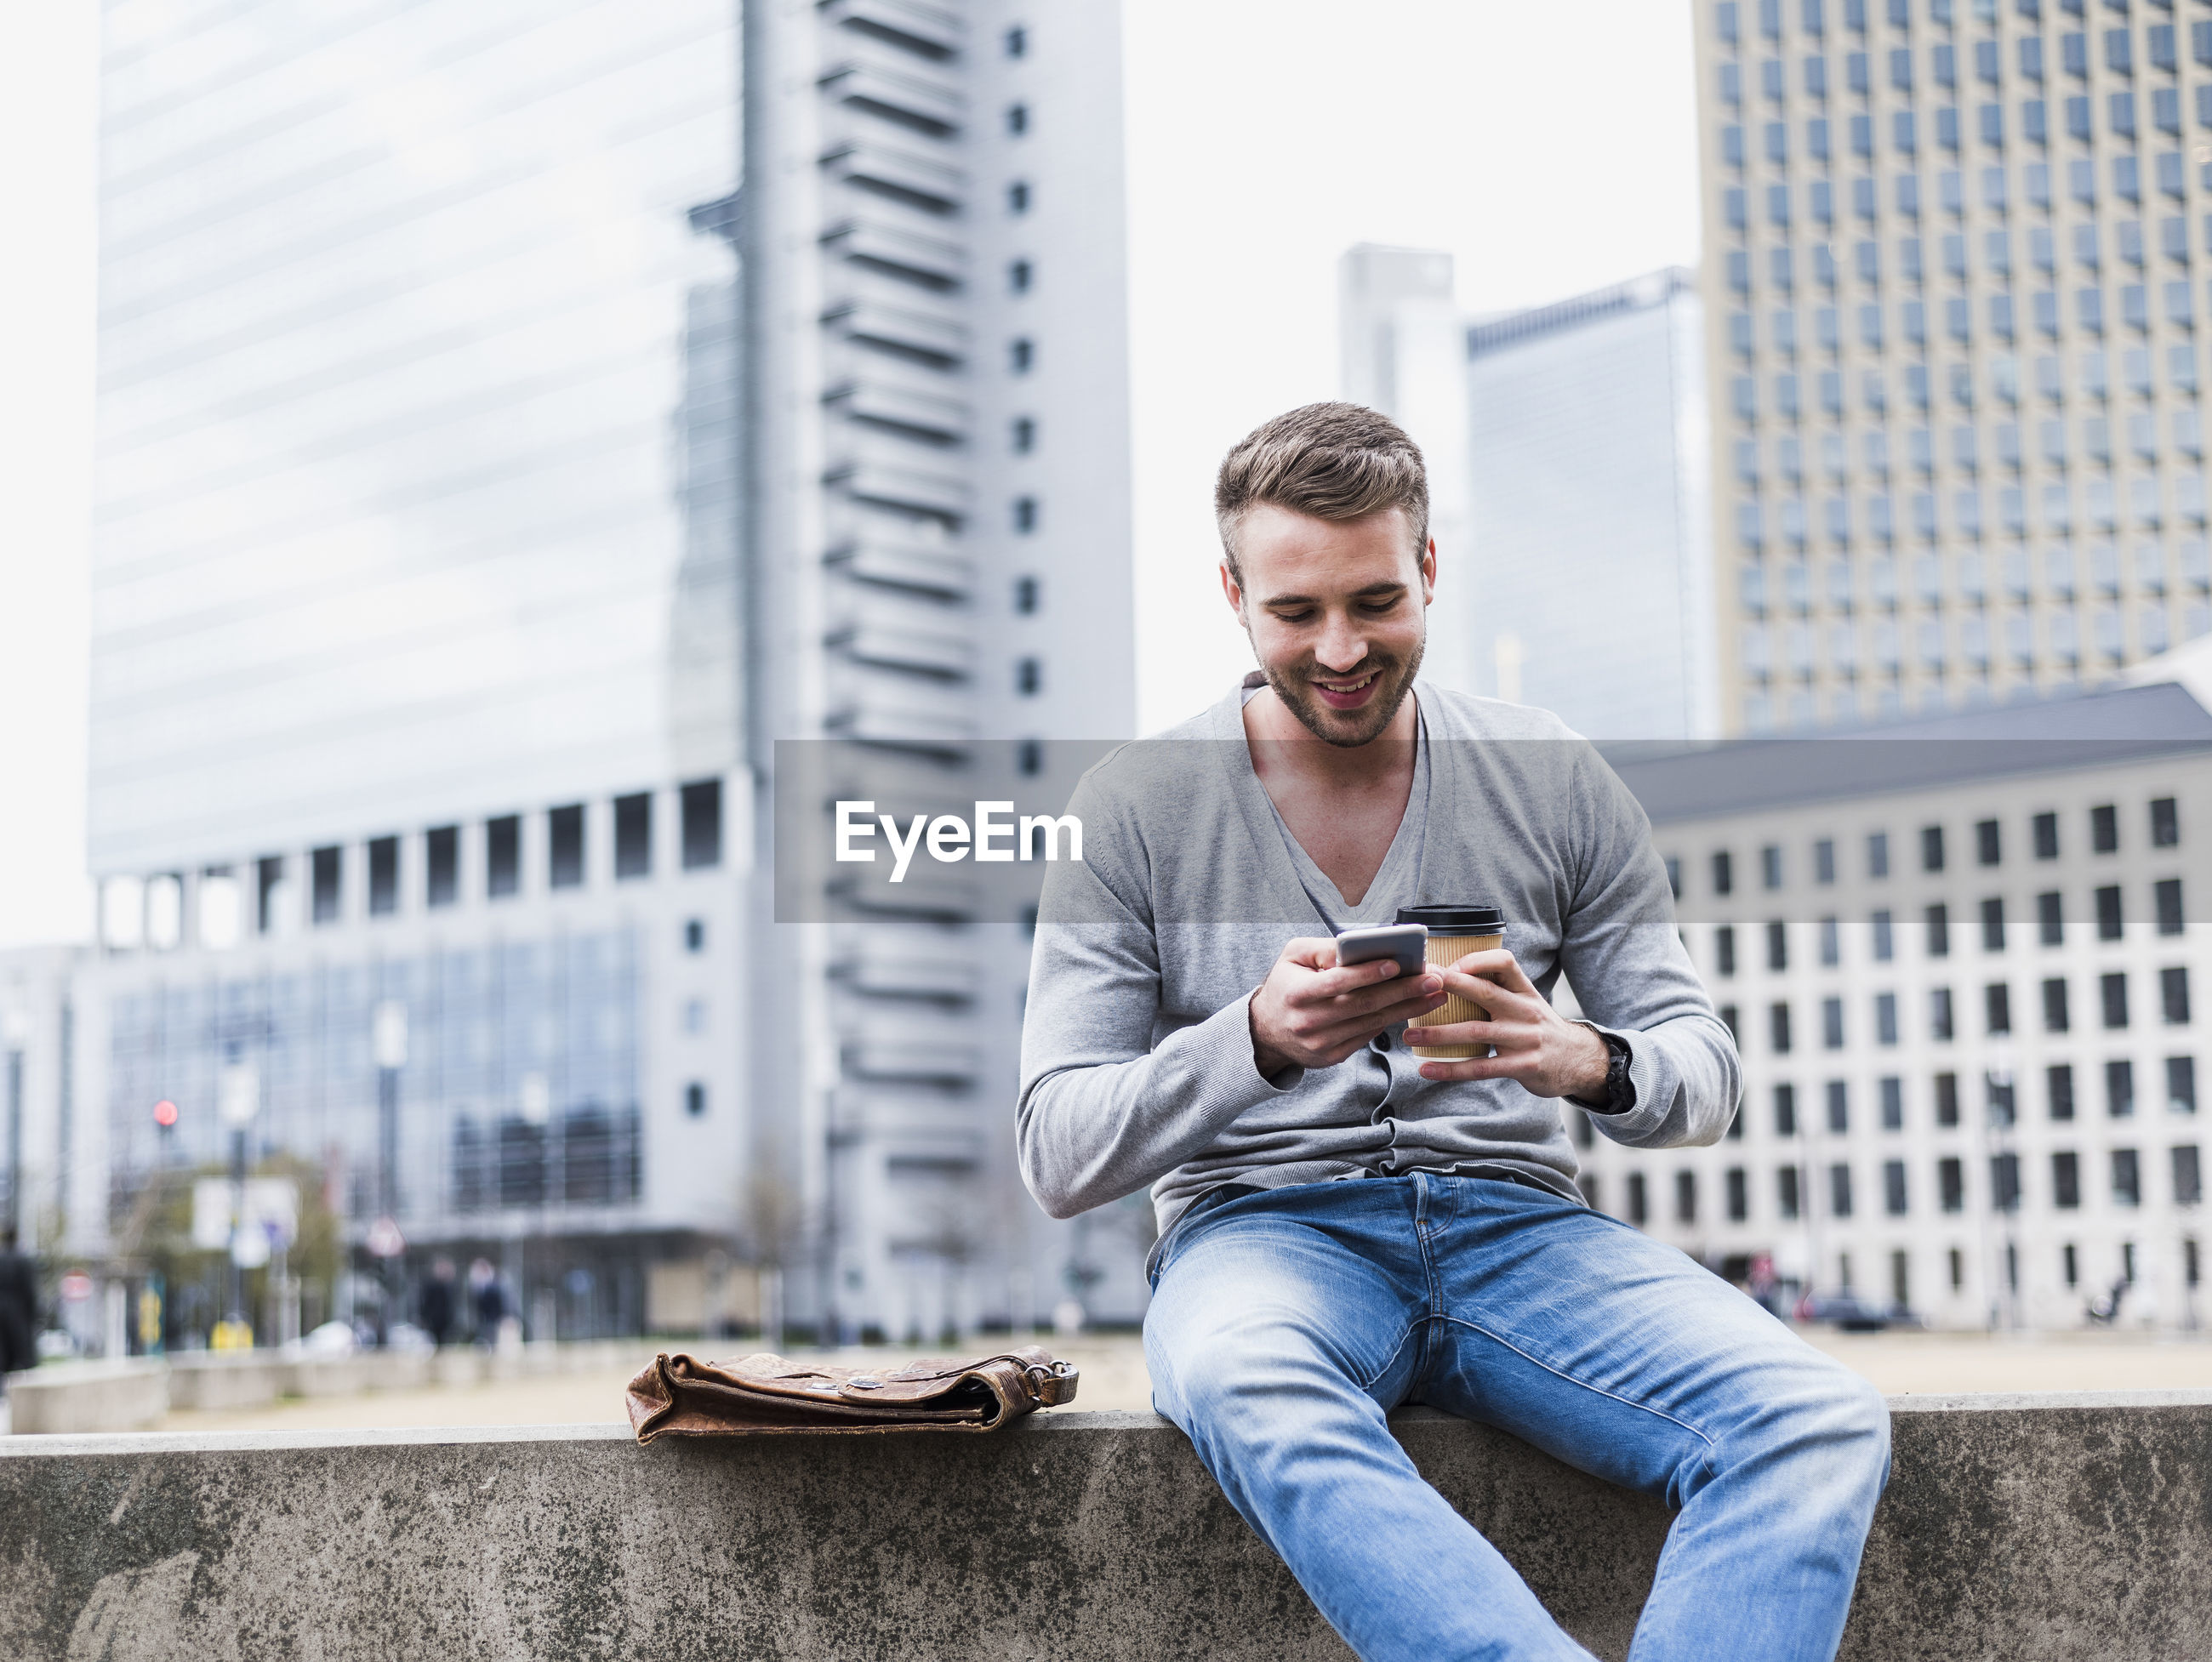 YOUNG MAN USING SMART PHONE WHILE SITTING ON CITY